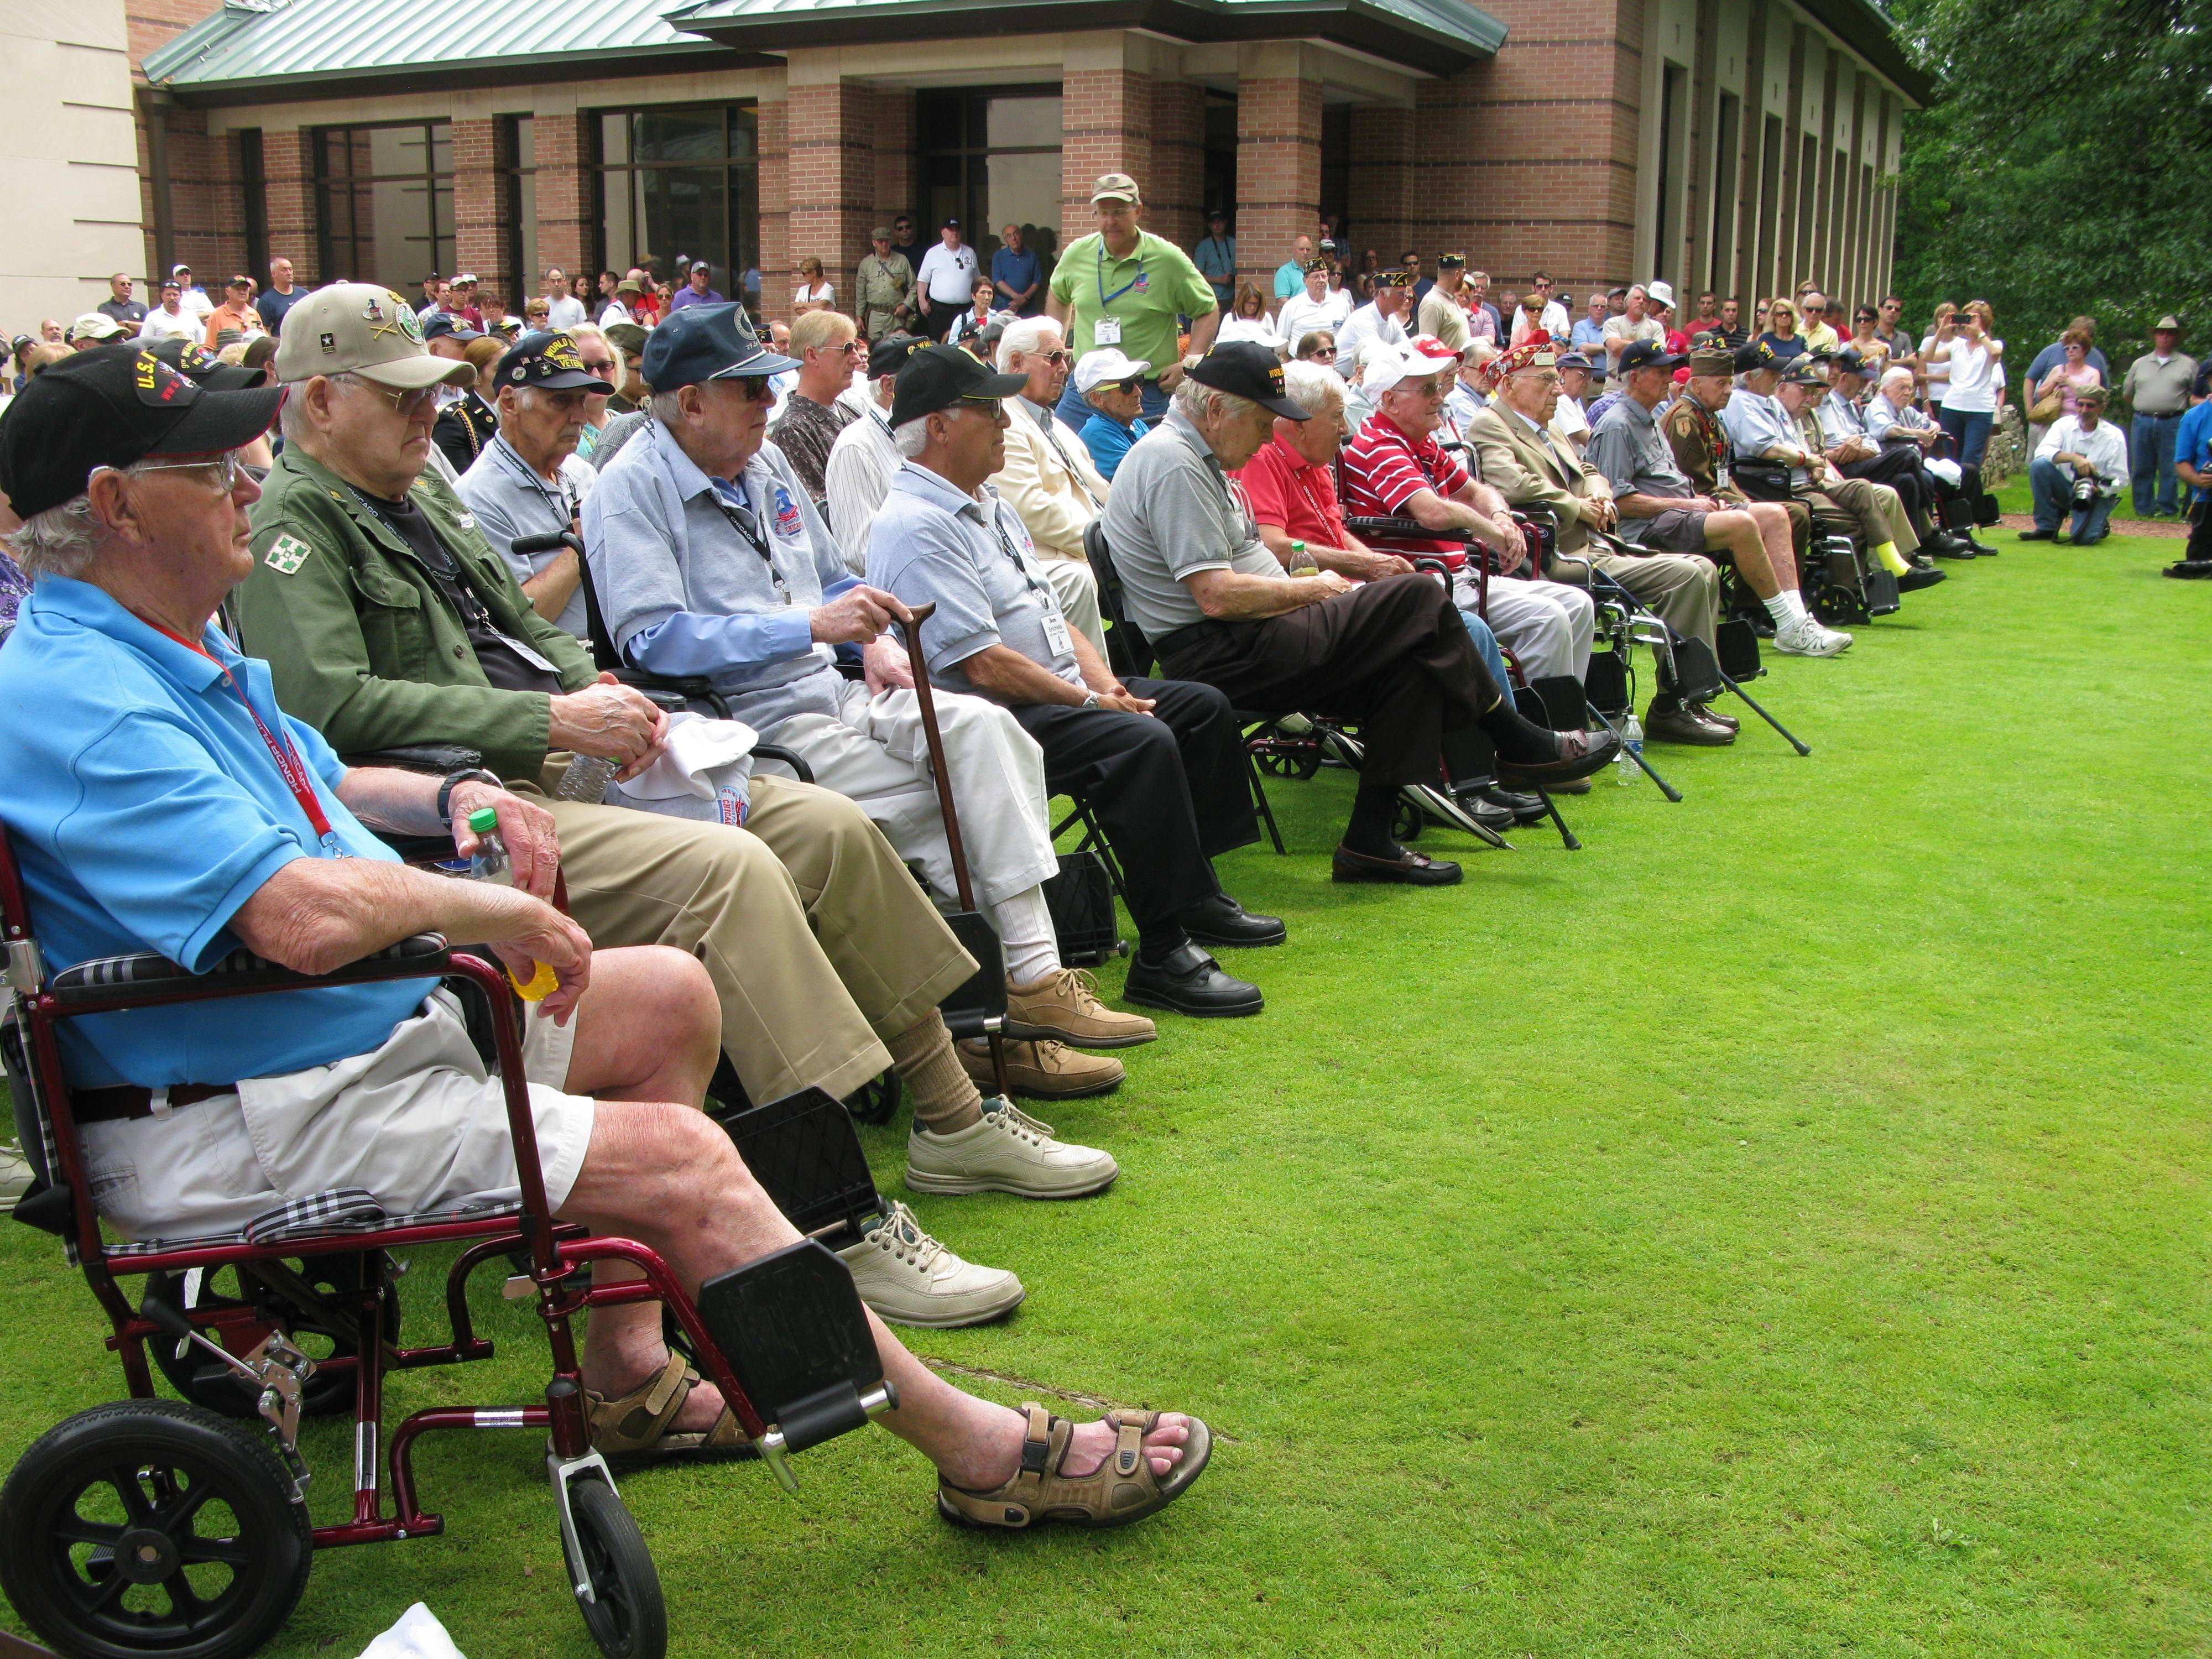 World War II veterans sit in the first row during the 70th anniversary commemoration of D-Day, the Allied invasion of France, Saturday at Cantigny Park in Wheaton.